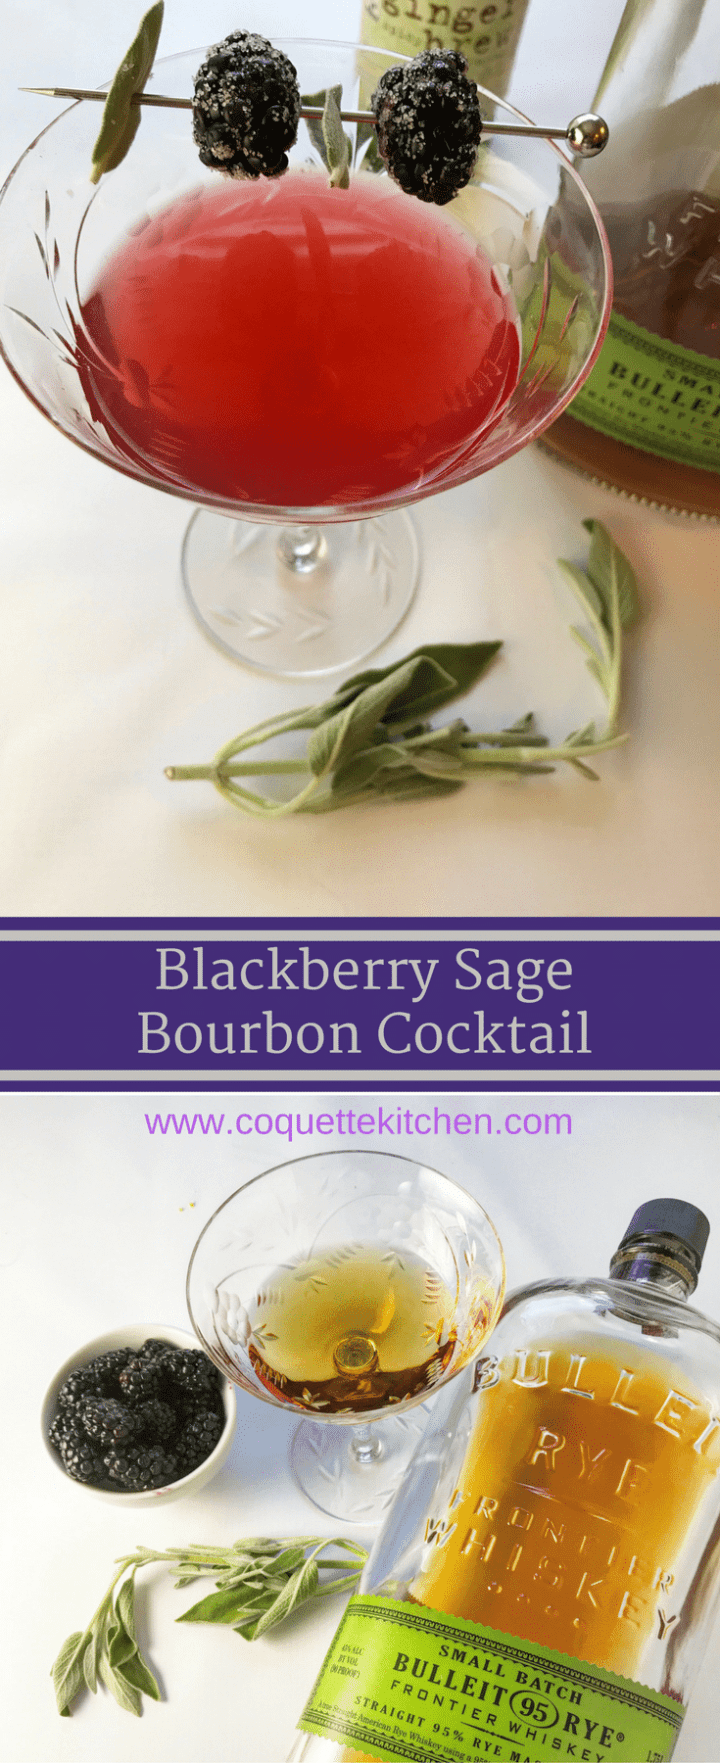 This GORGEOUS Blackberry Sage and Bourbon Cocktail is sweet, tart, woodsy, and delicious. Such an elegant little cocktail for your next brunch or dinner party! www.biscuitsandbooze.com